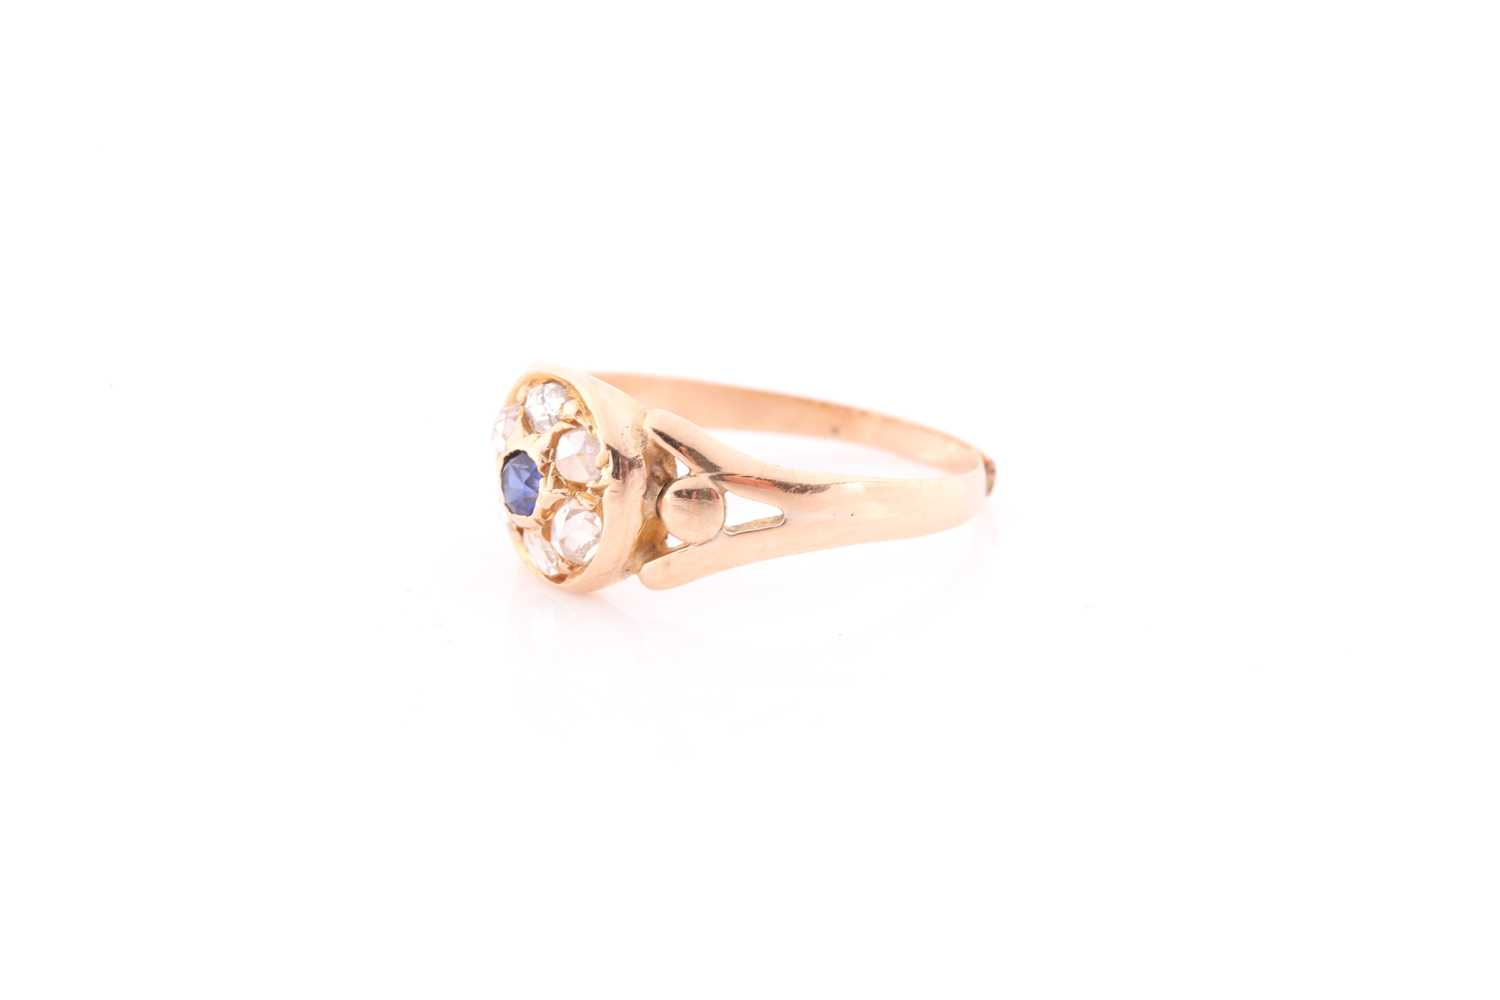 A yellow metal, diamond, and sapphire ring, set with a small round sapphire, within a border of - Image 4 of 4